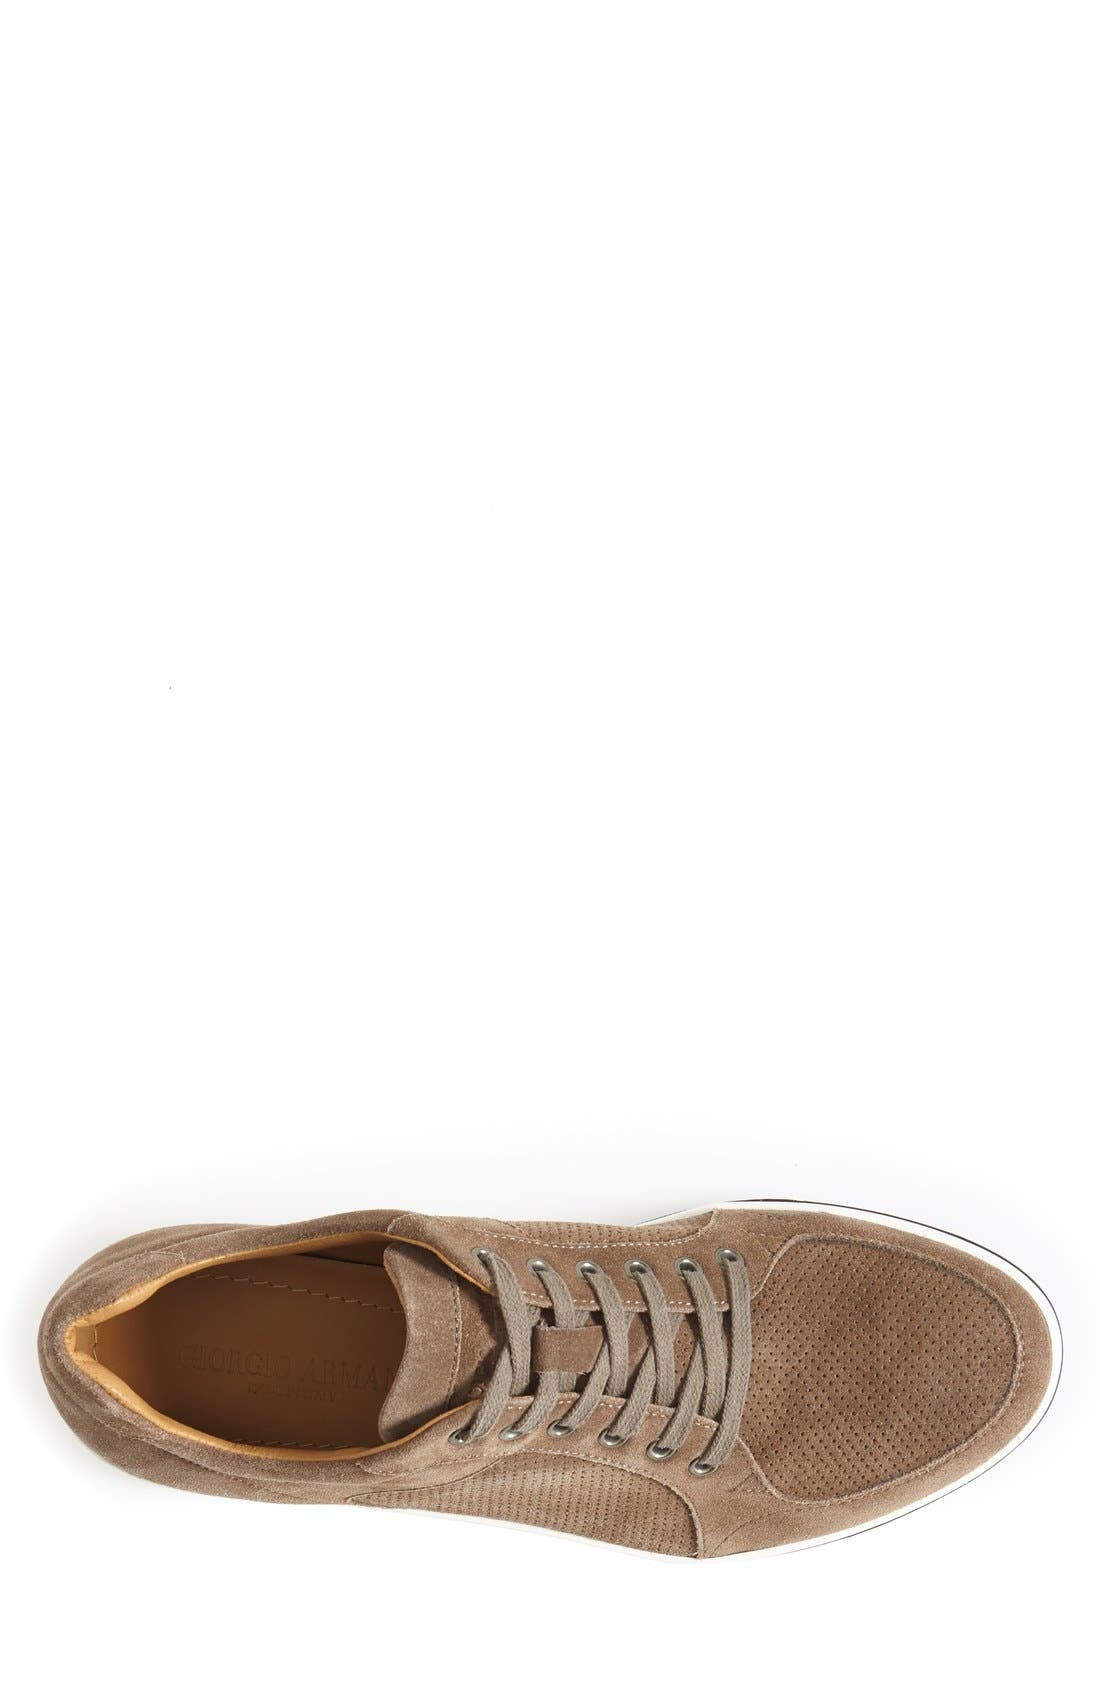 Perforated Suede Sneaker,                             Alternate thumbnail 2, color,                             260